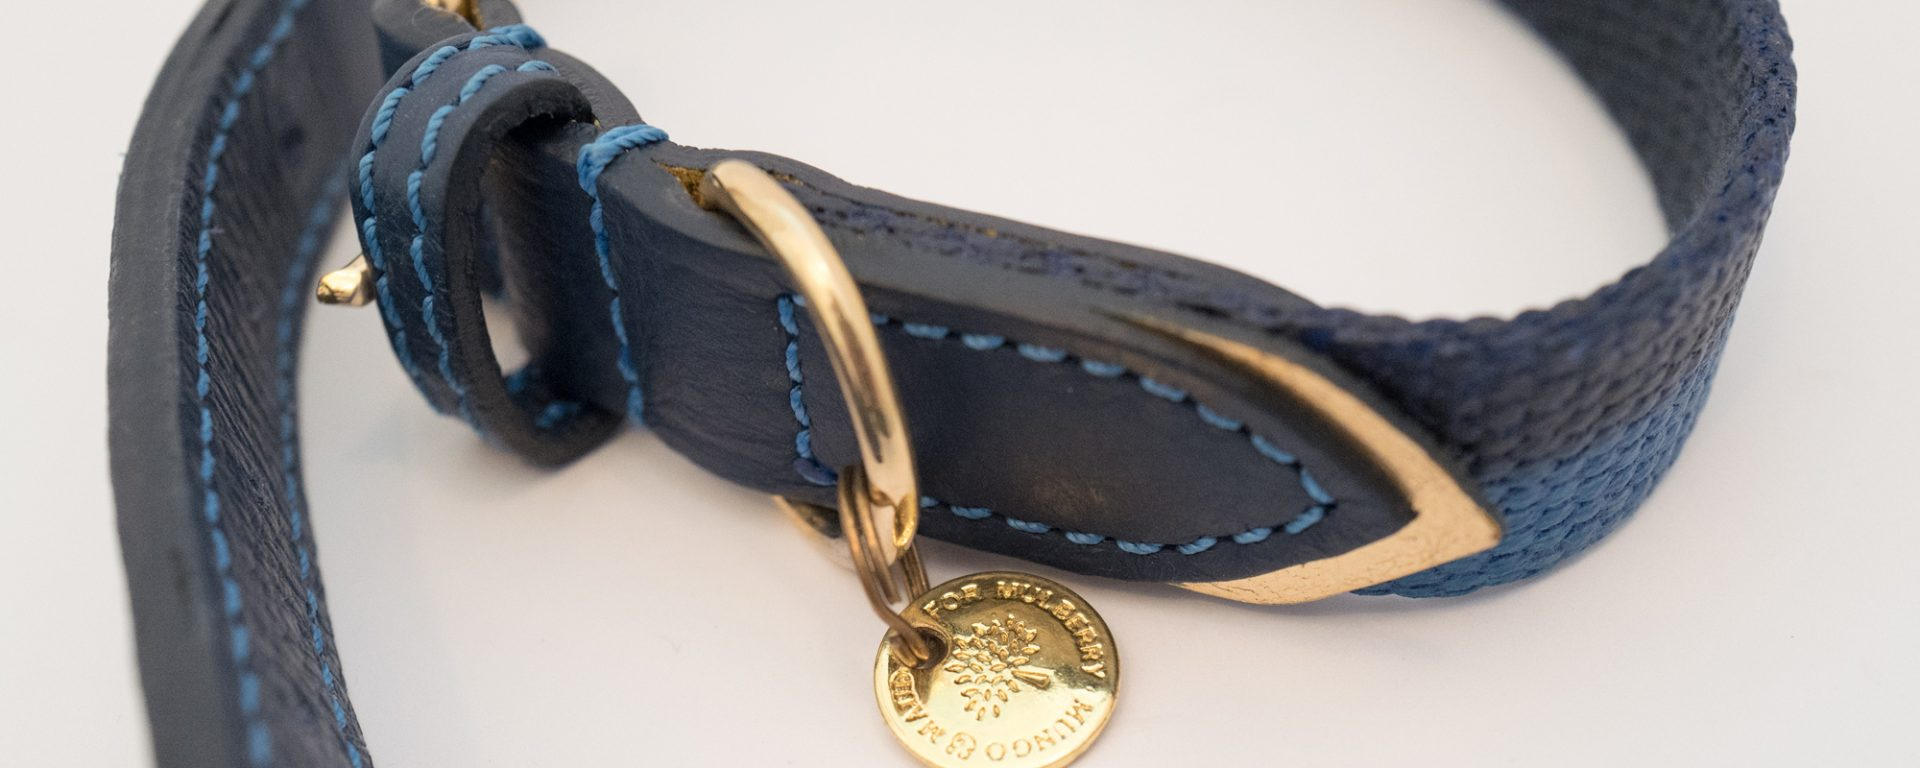 Mulberry dog collar & lead - Blue & gold